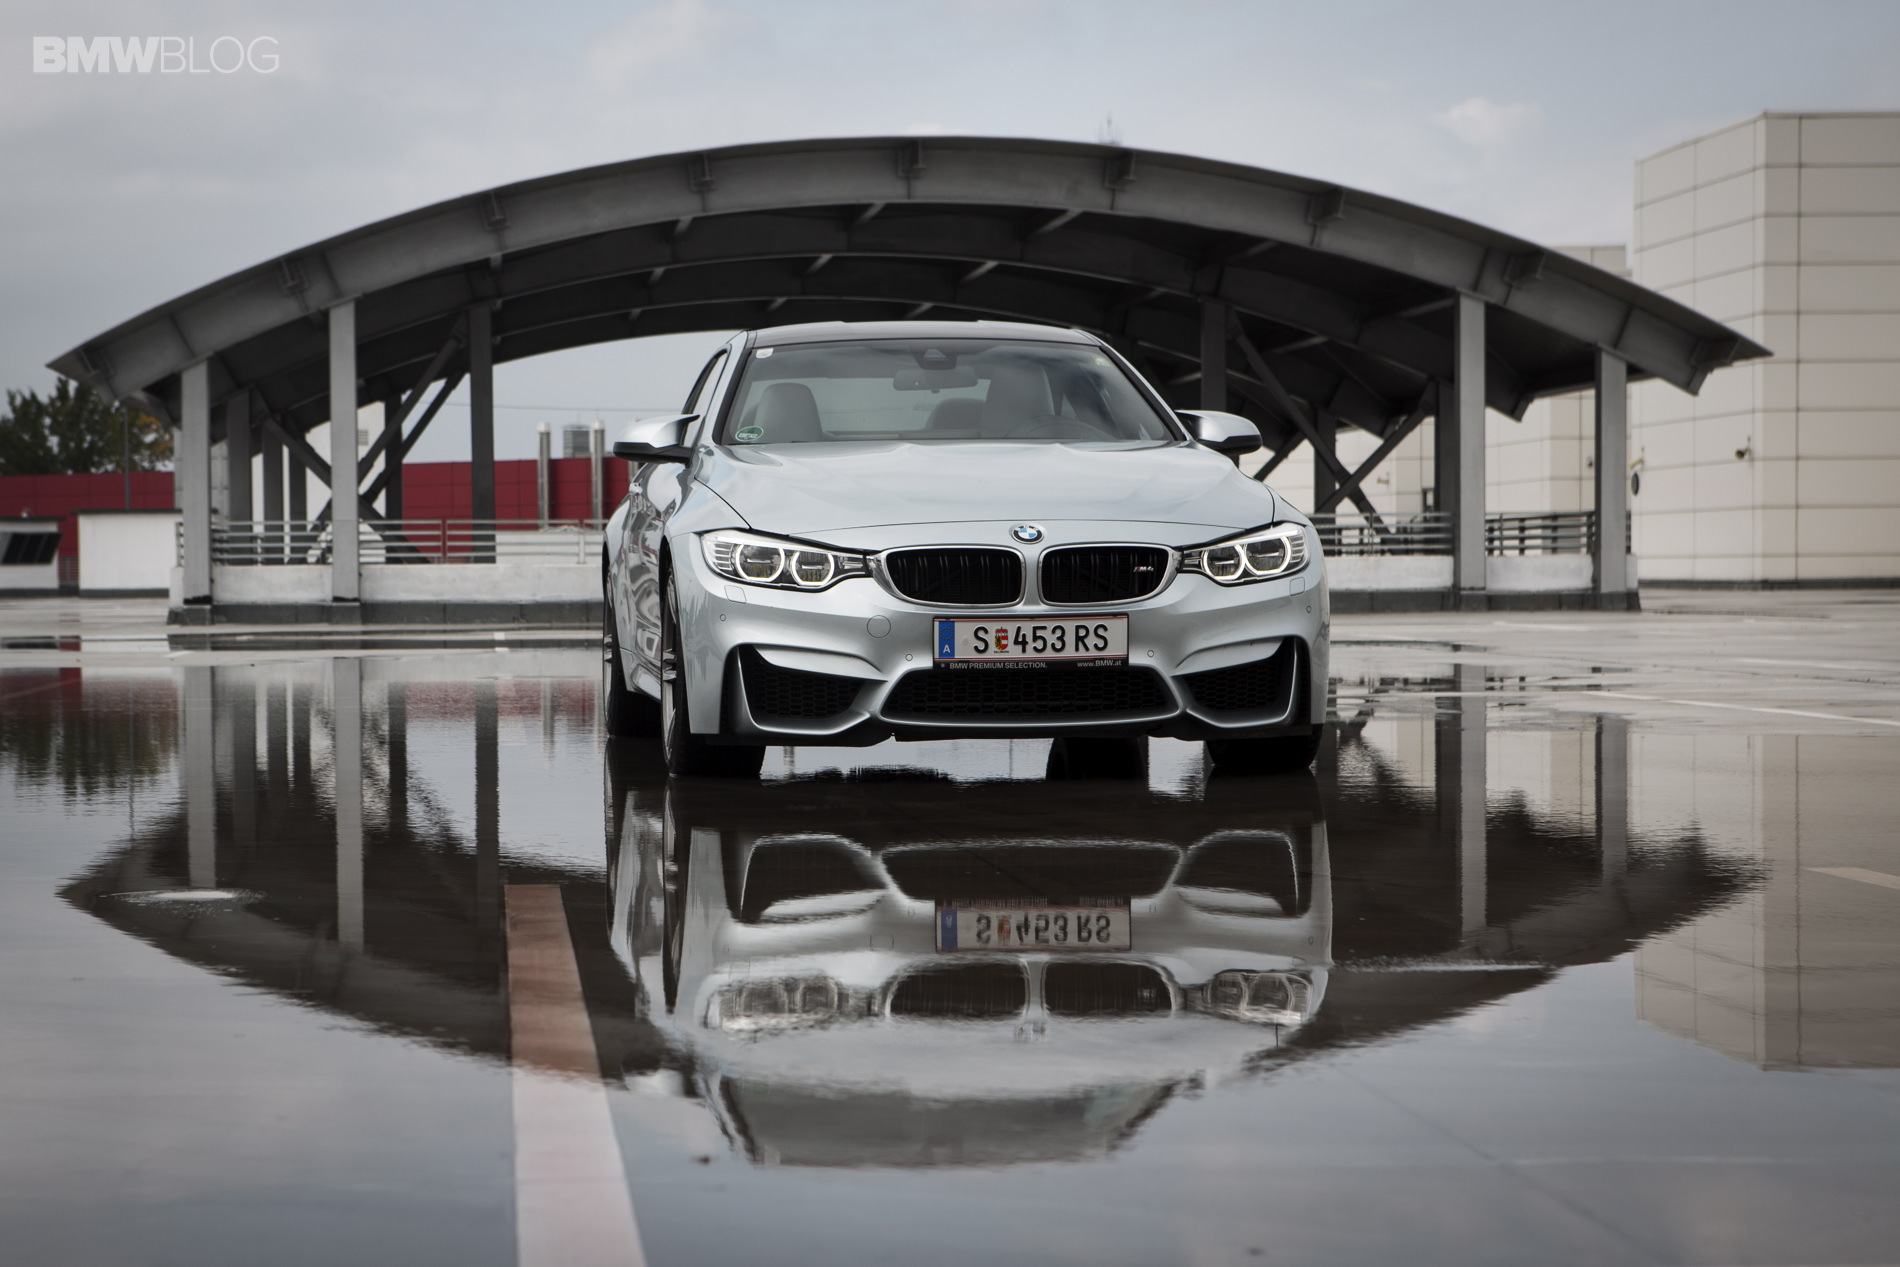 2015 bmw m4 coupe silverstone II 18